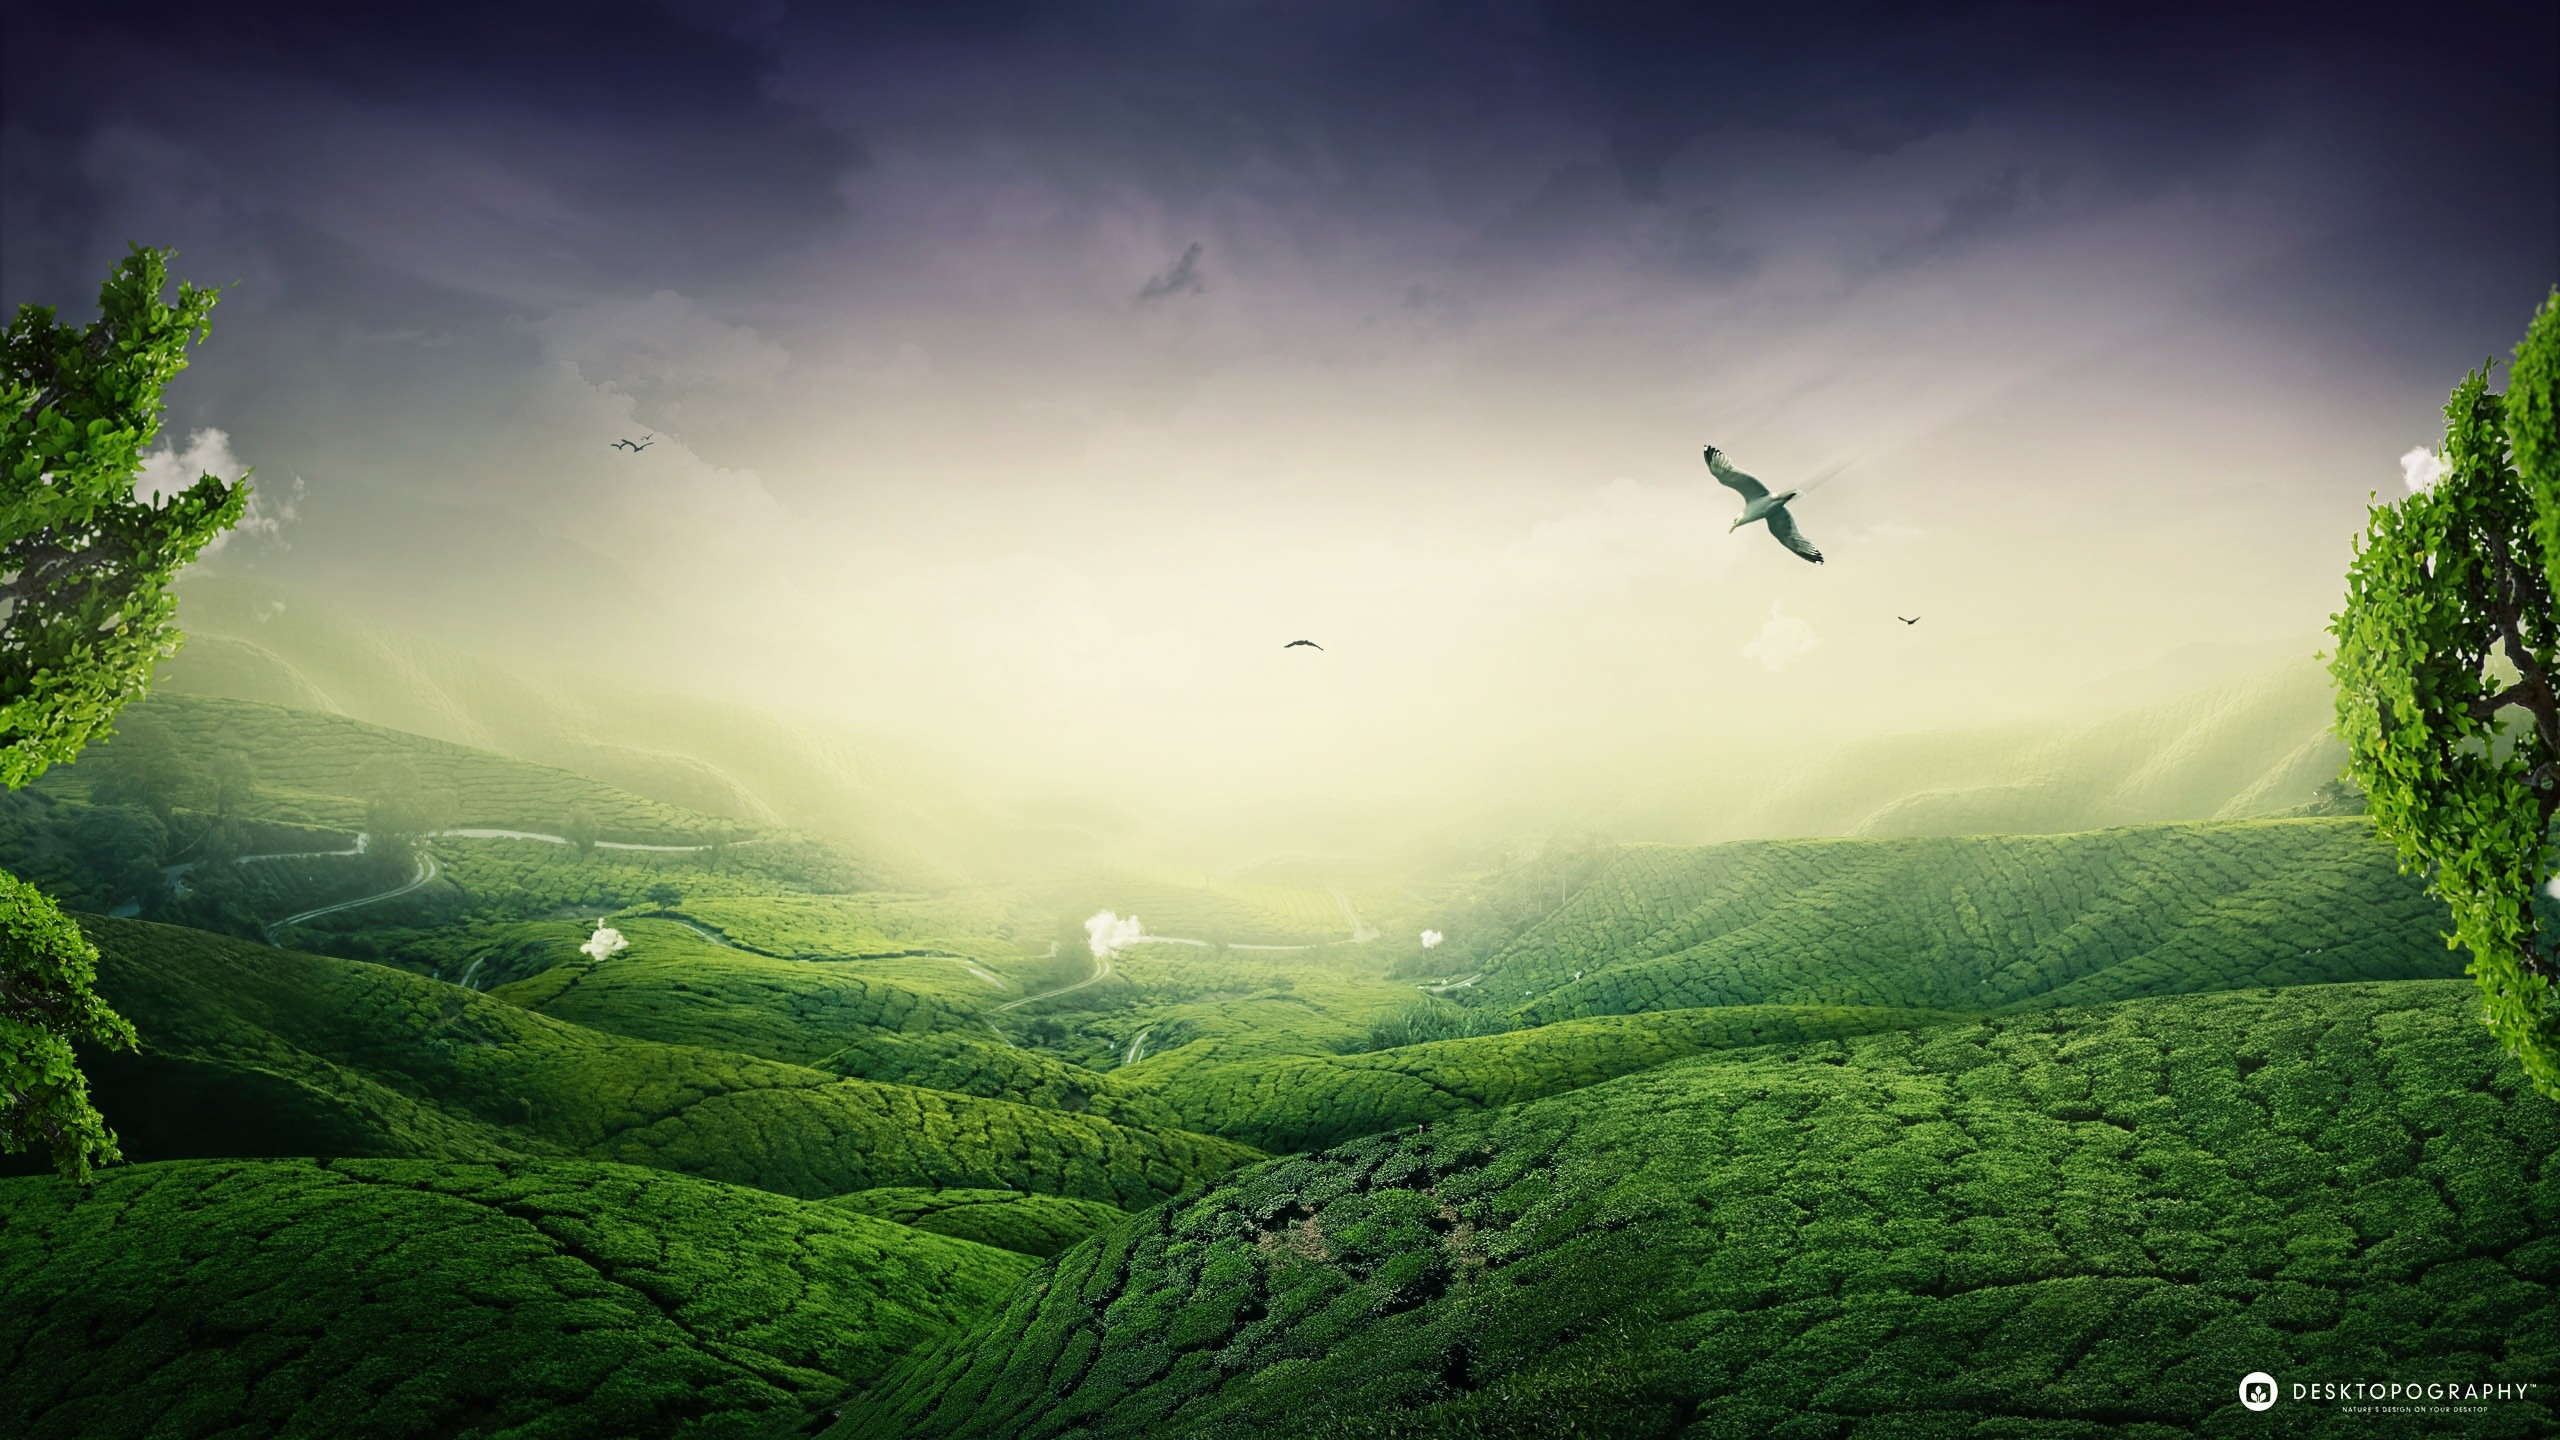 Hd Landscape Wallpapers Collection For Free Download - Hd Landscape , HD Wallpaper & Backgrounds